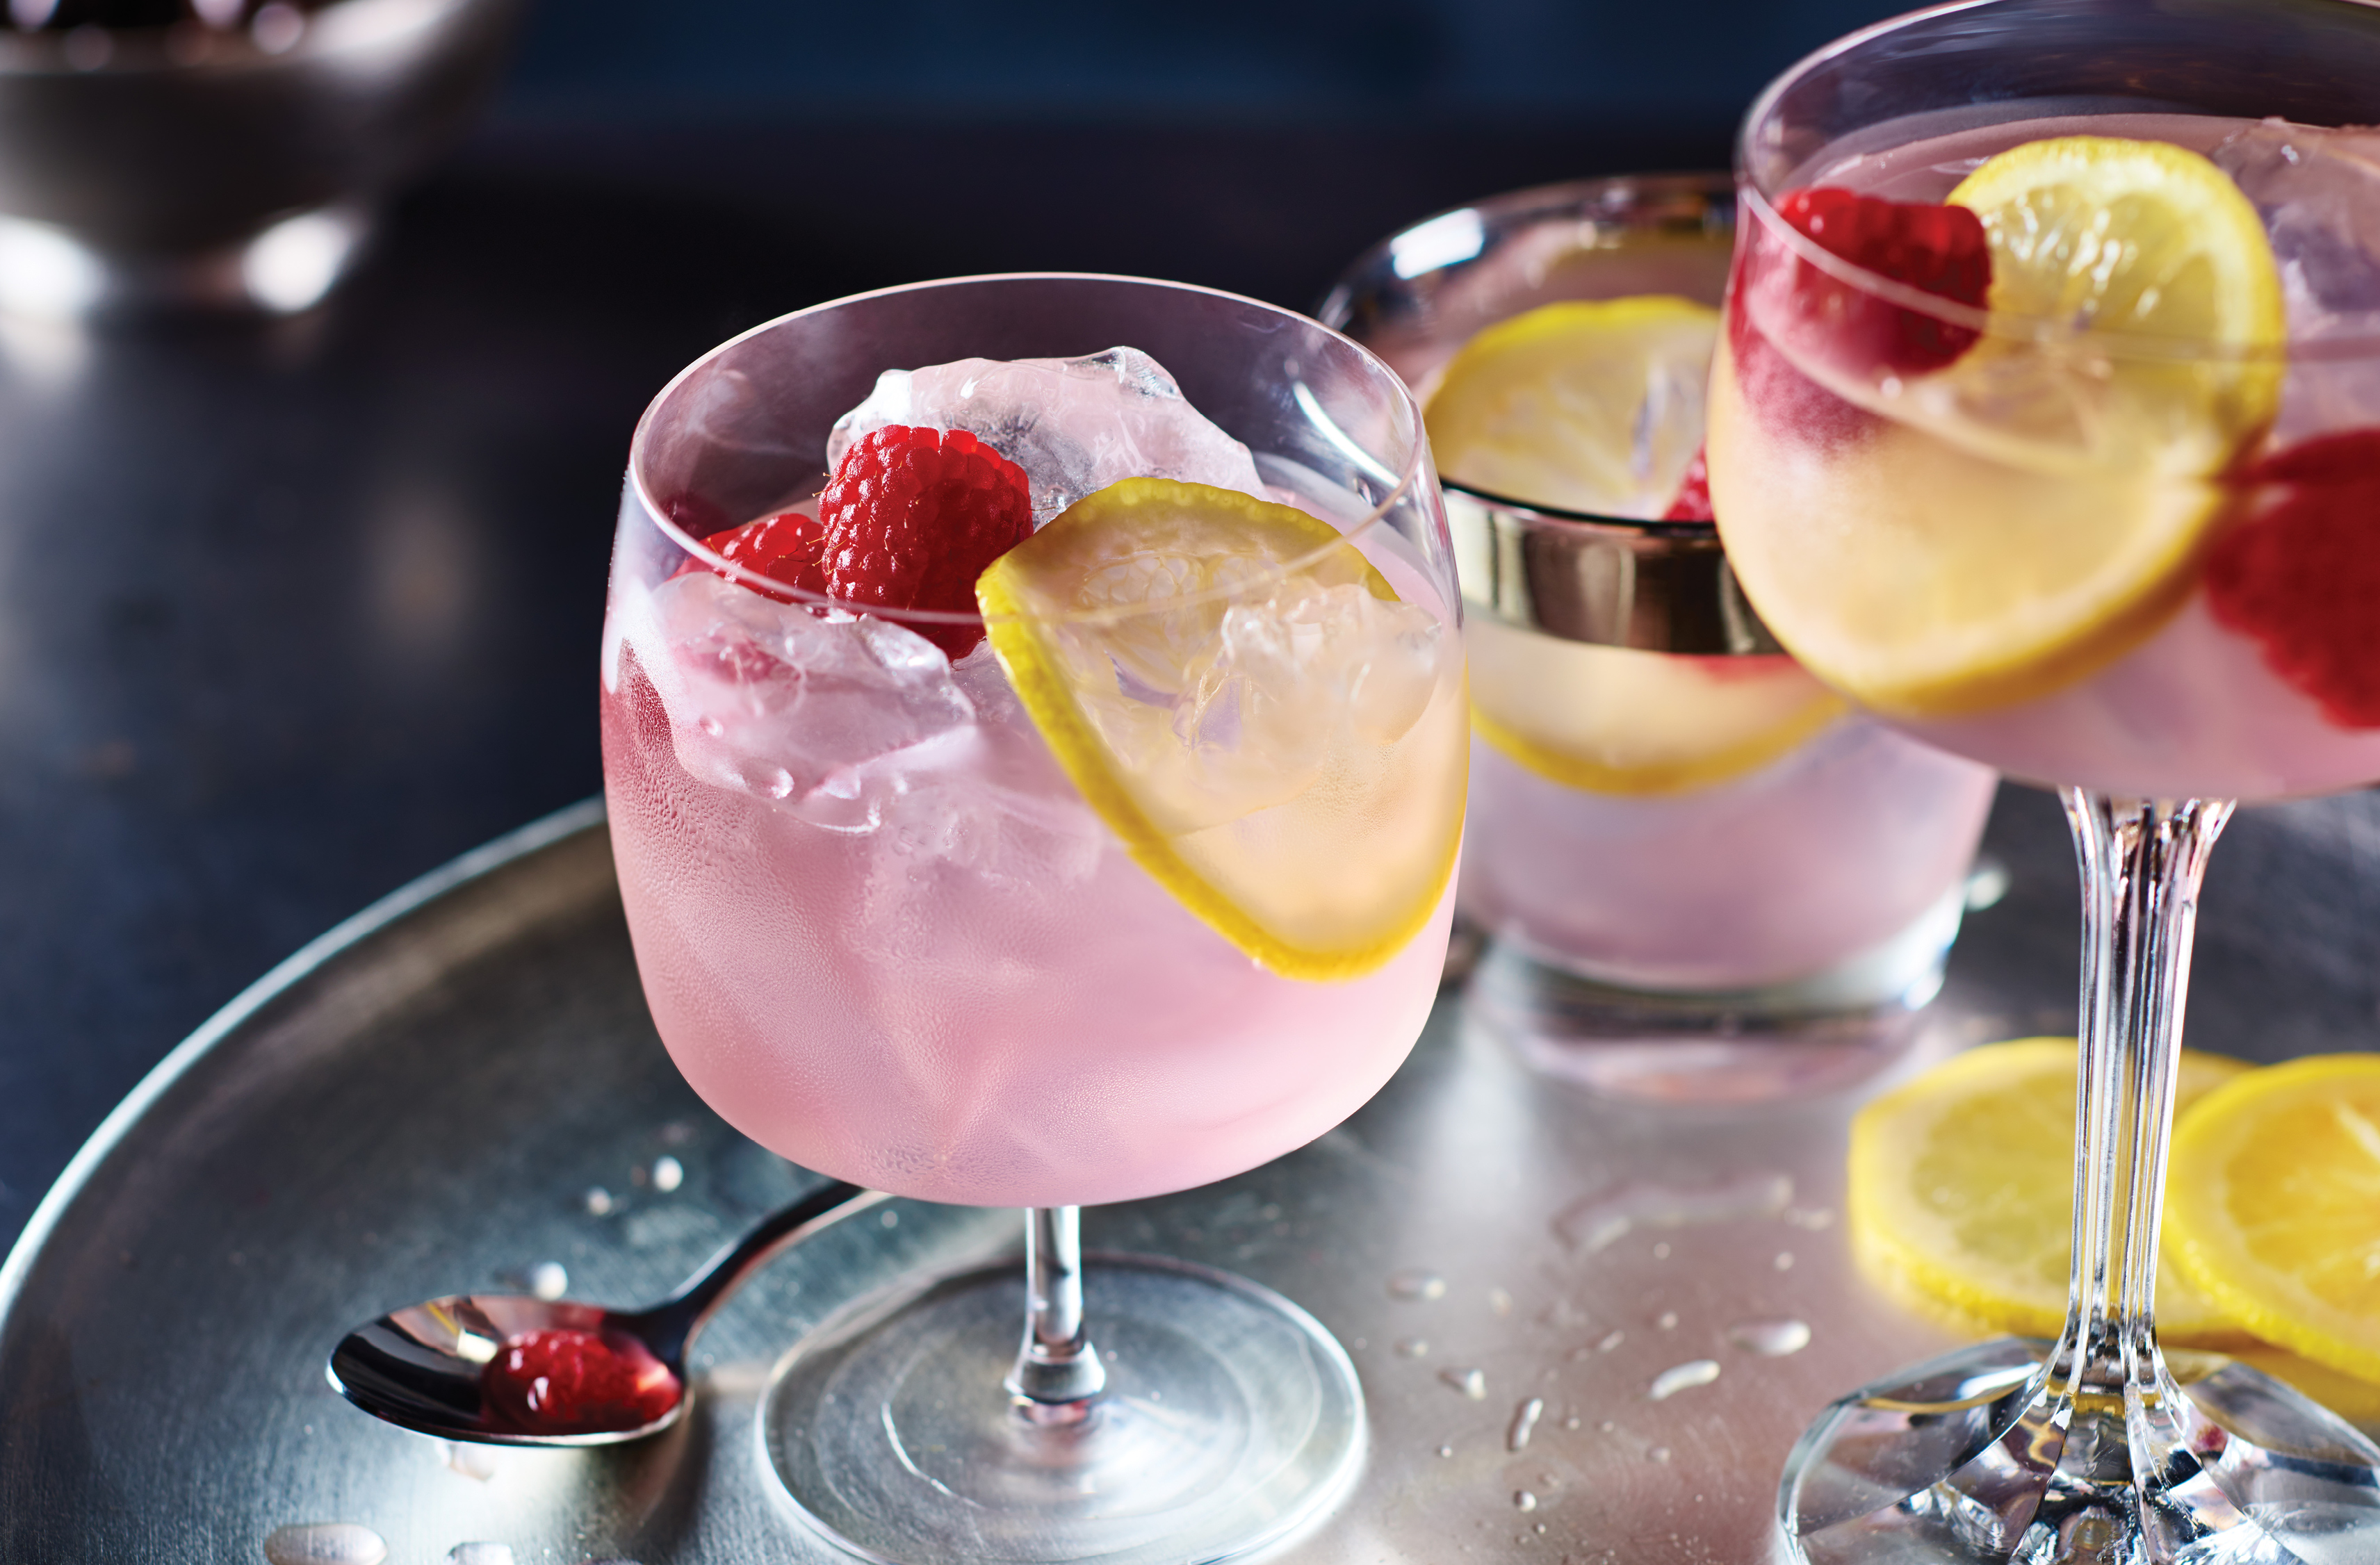 3 glasses of pink ginger kicker cocktail with raspberries and lemon slices as garnish